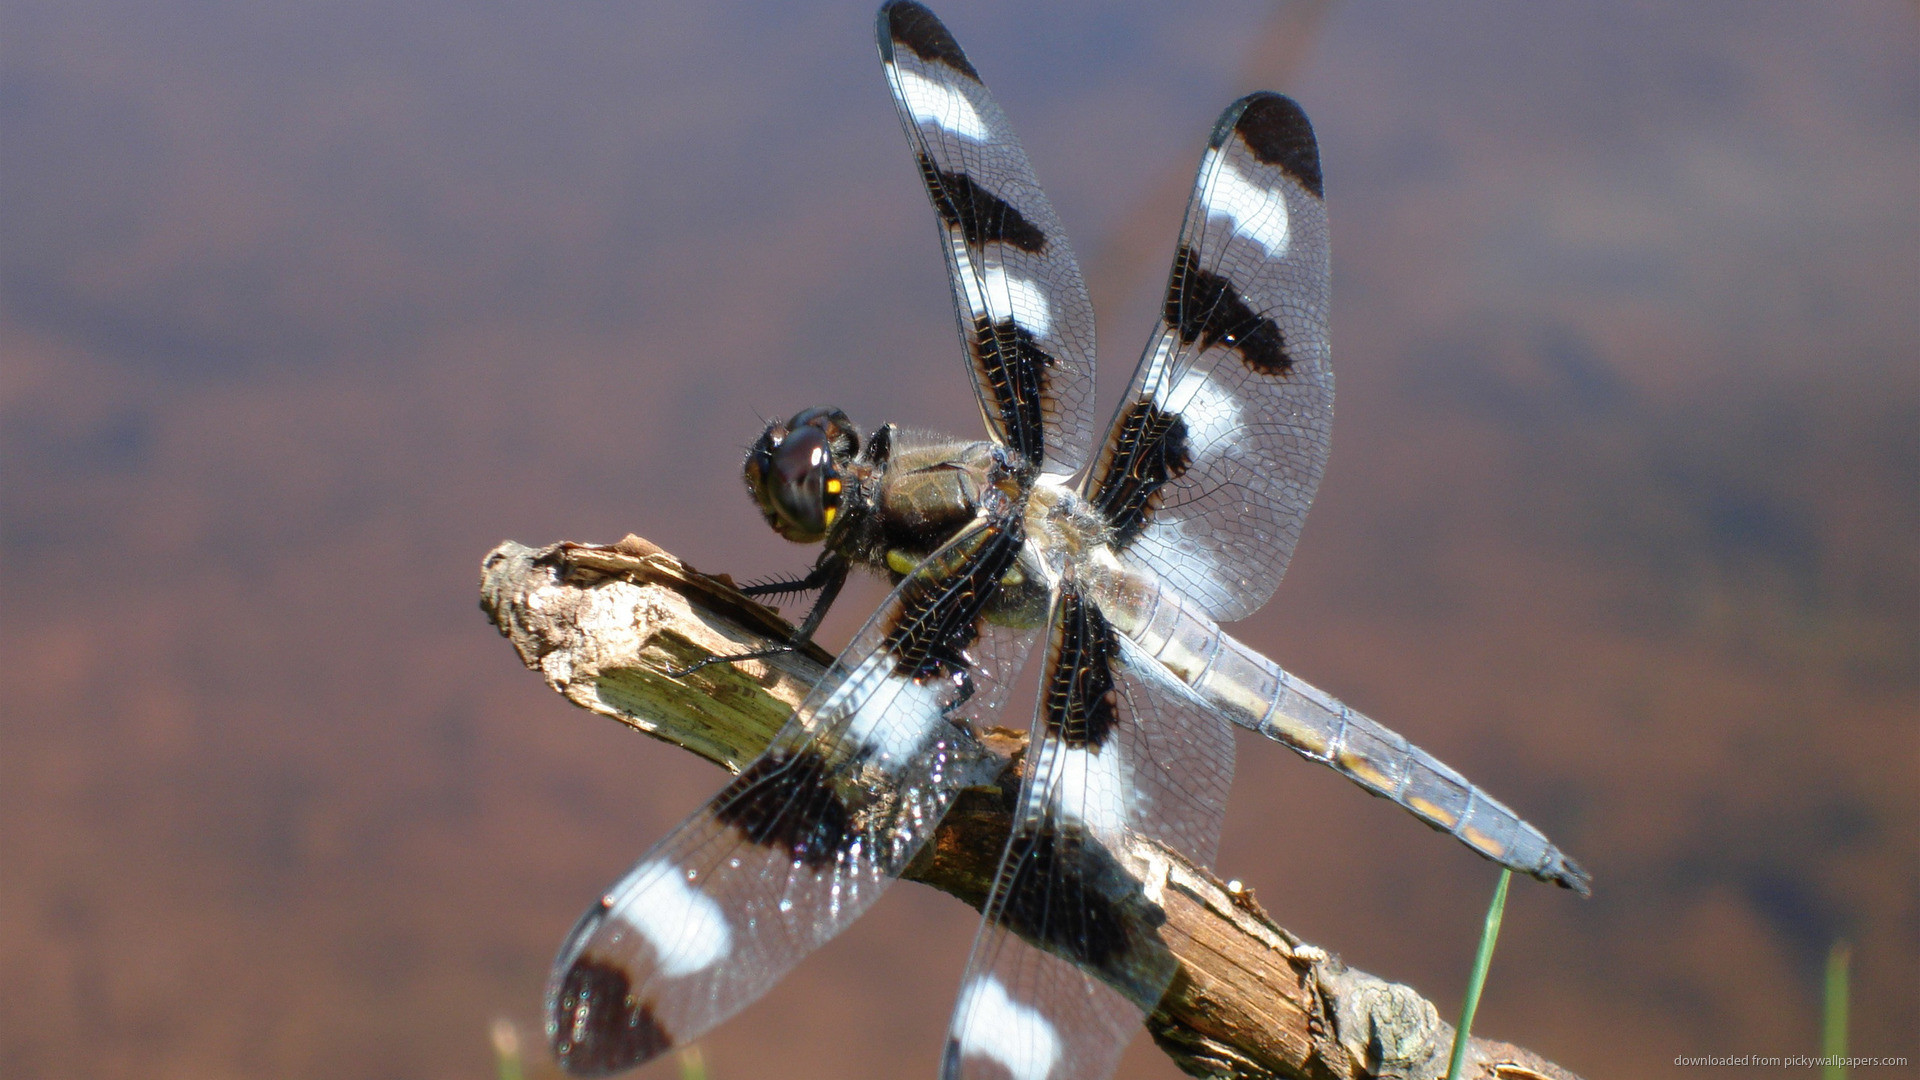 White and Black Dragonfly Insect Wallpaper picture